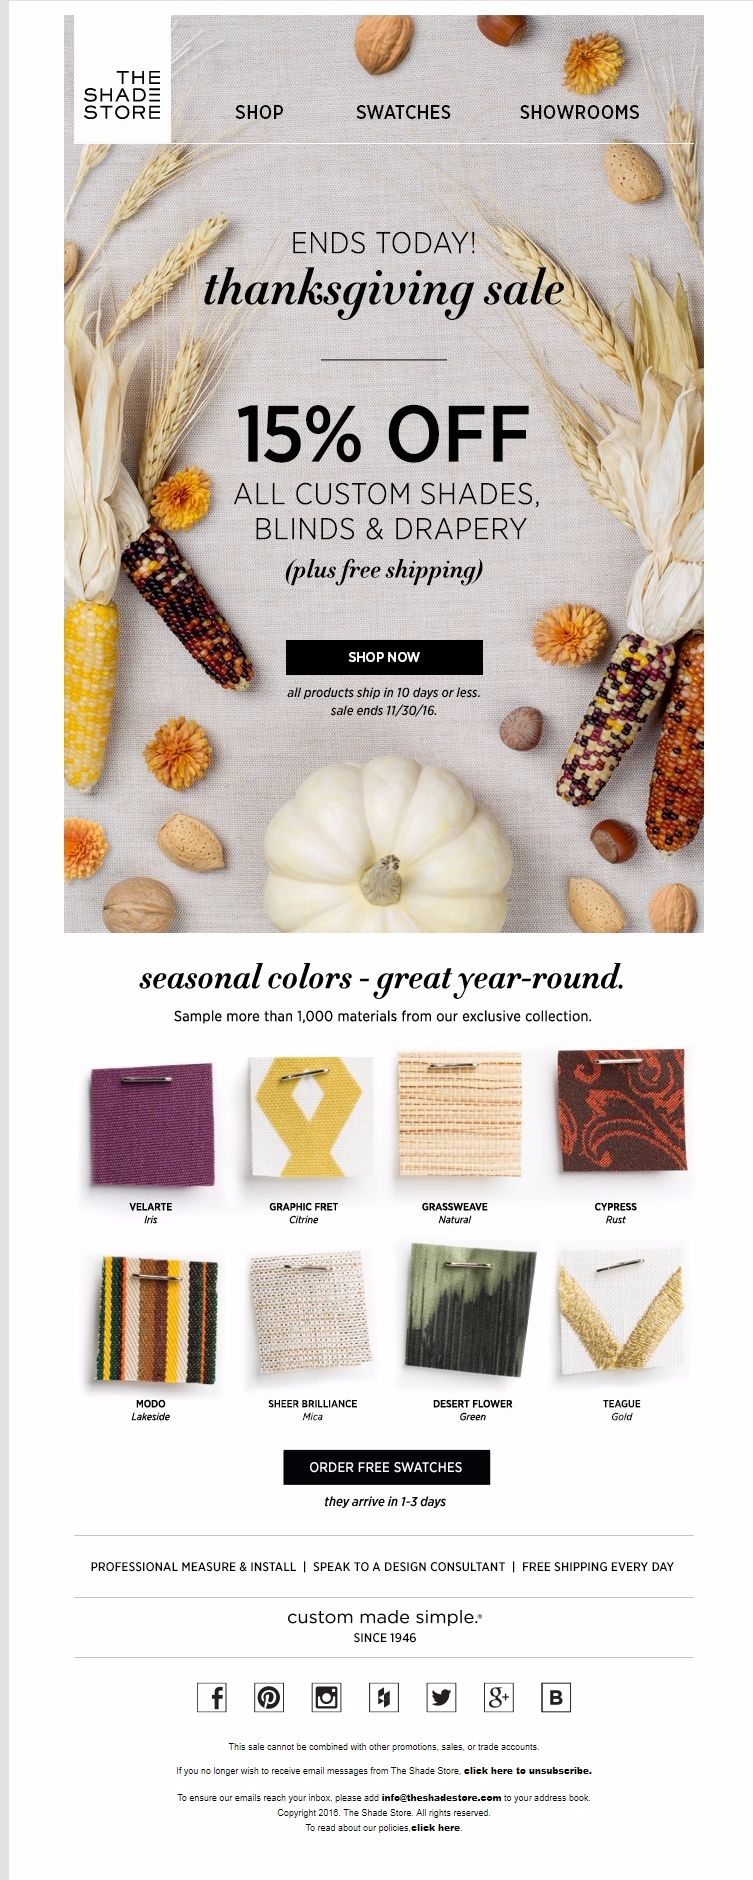 How to Choose the Right Colors for Your Holiday Emails